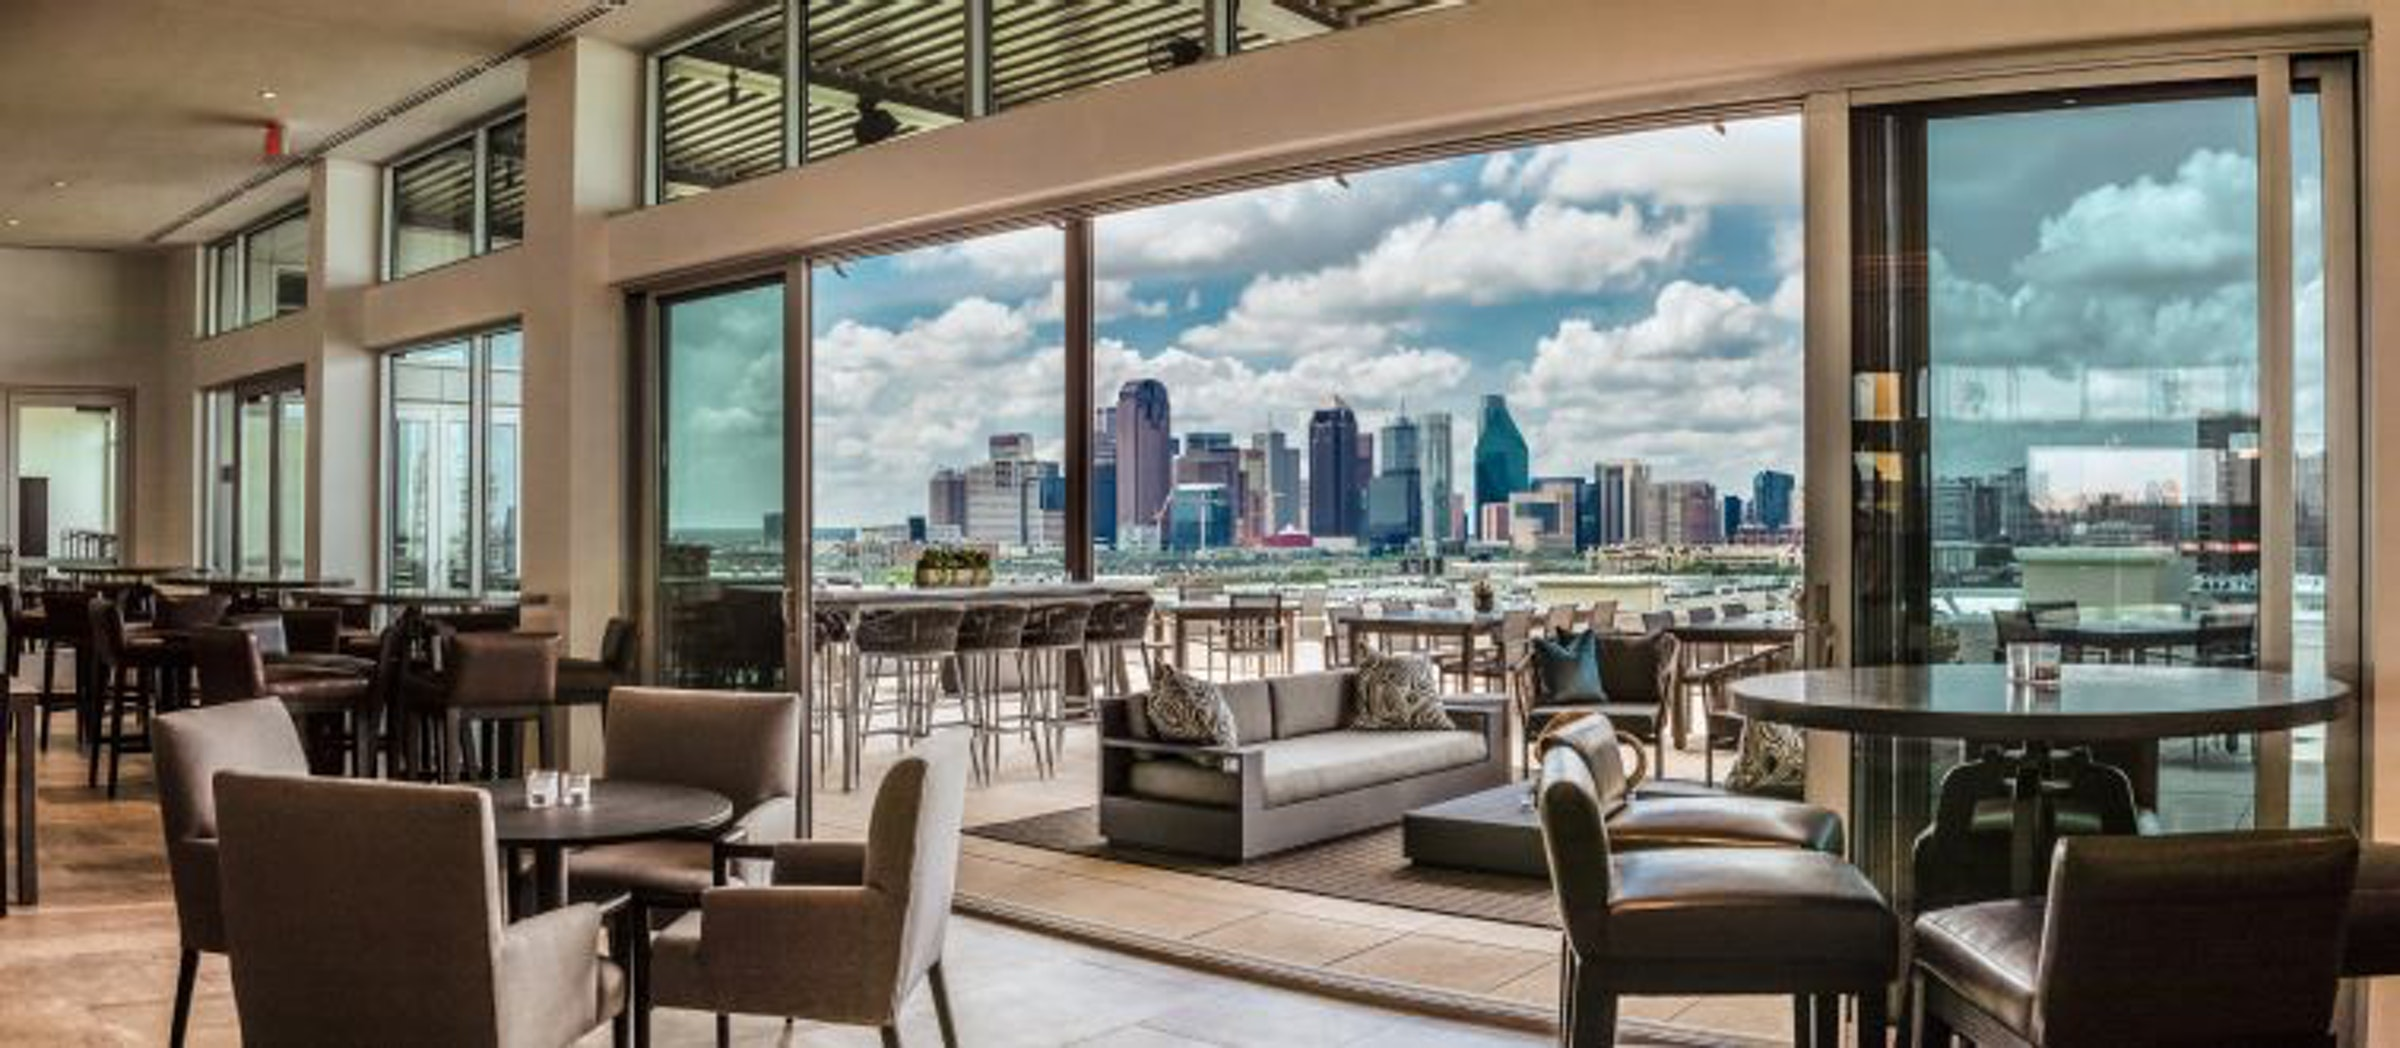 Canopy by Hilton Dallas Uptown in Beyond Dallas